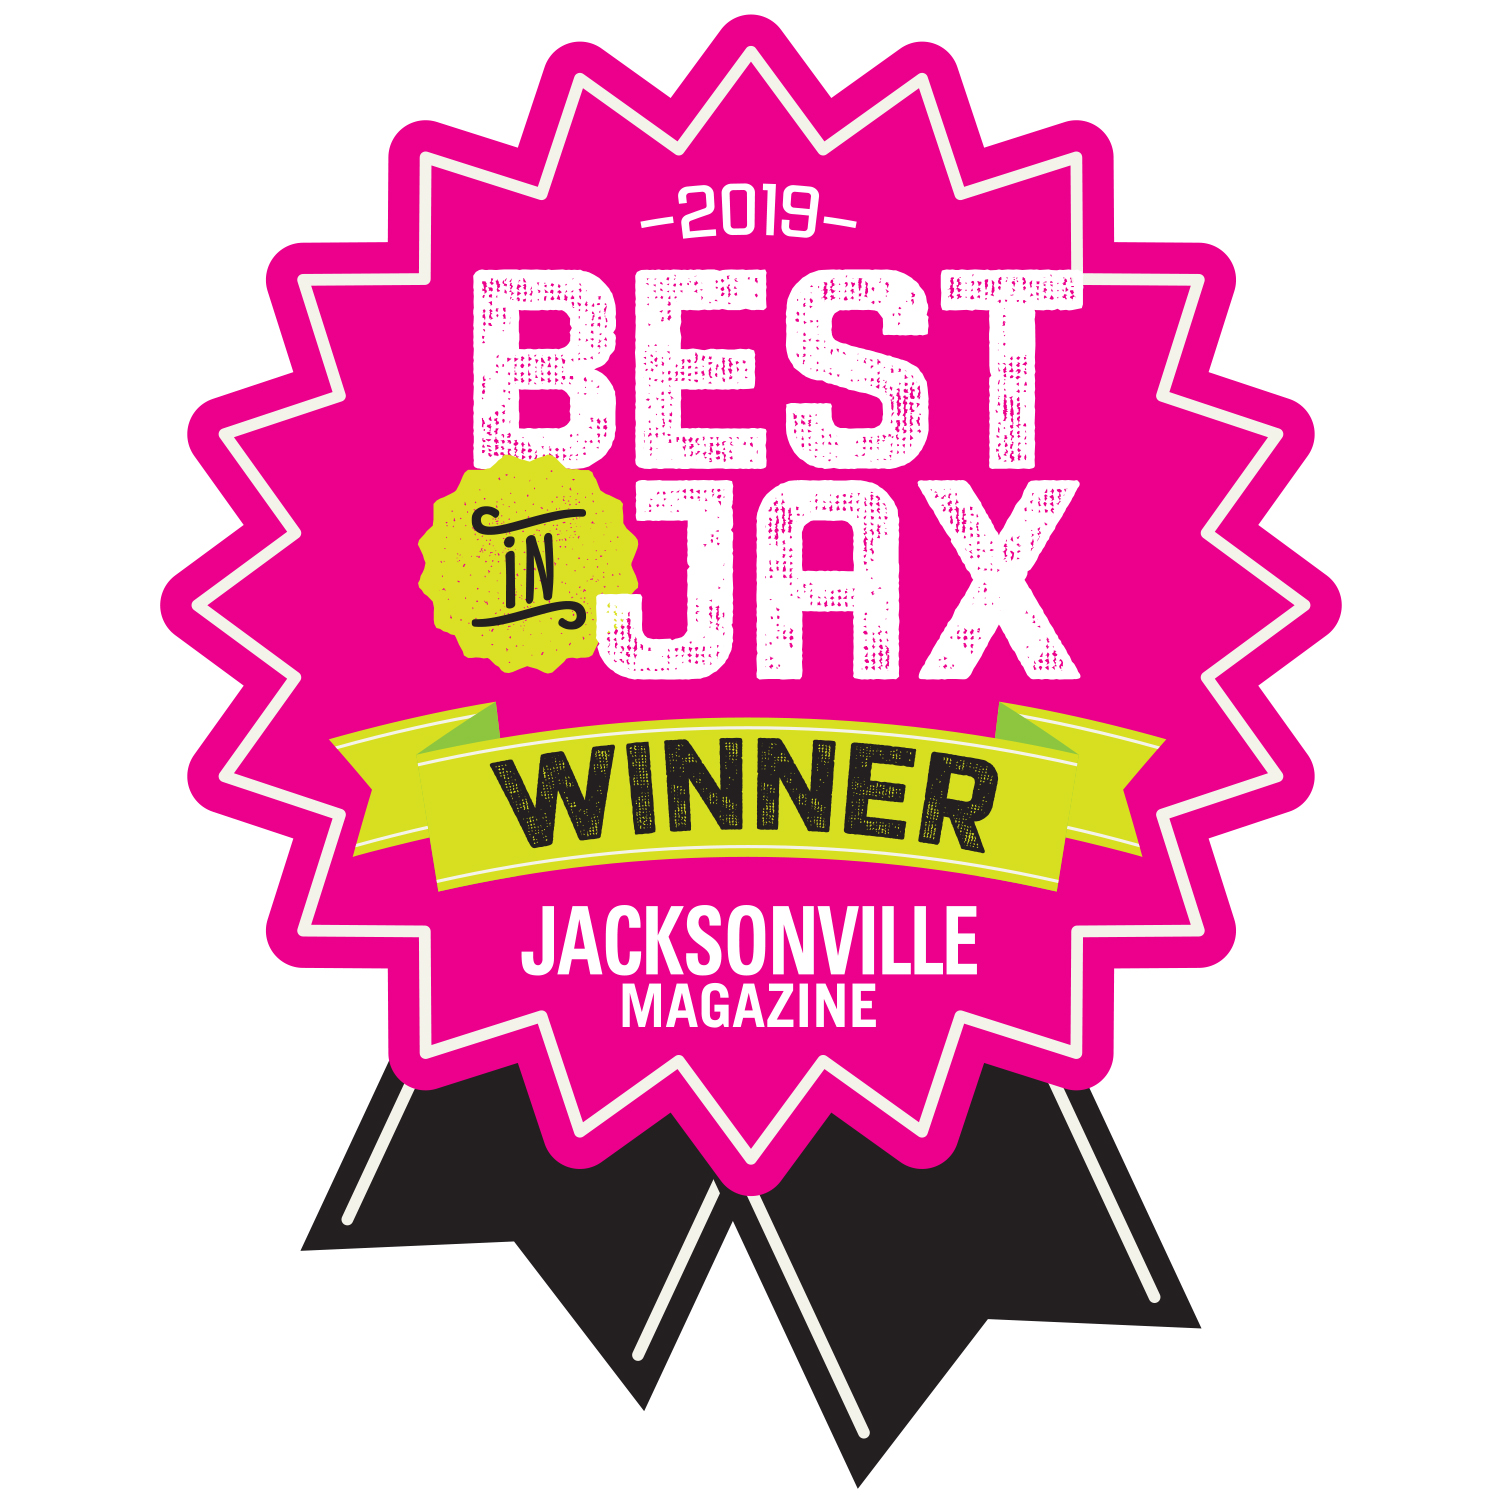 Best Animal Hospital in Avondale/Riverside in Jacksonville Magazine